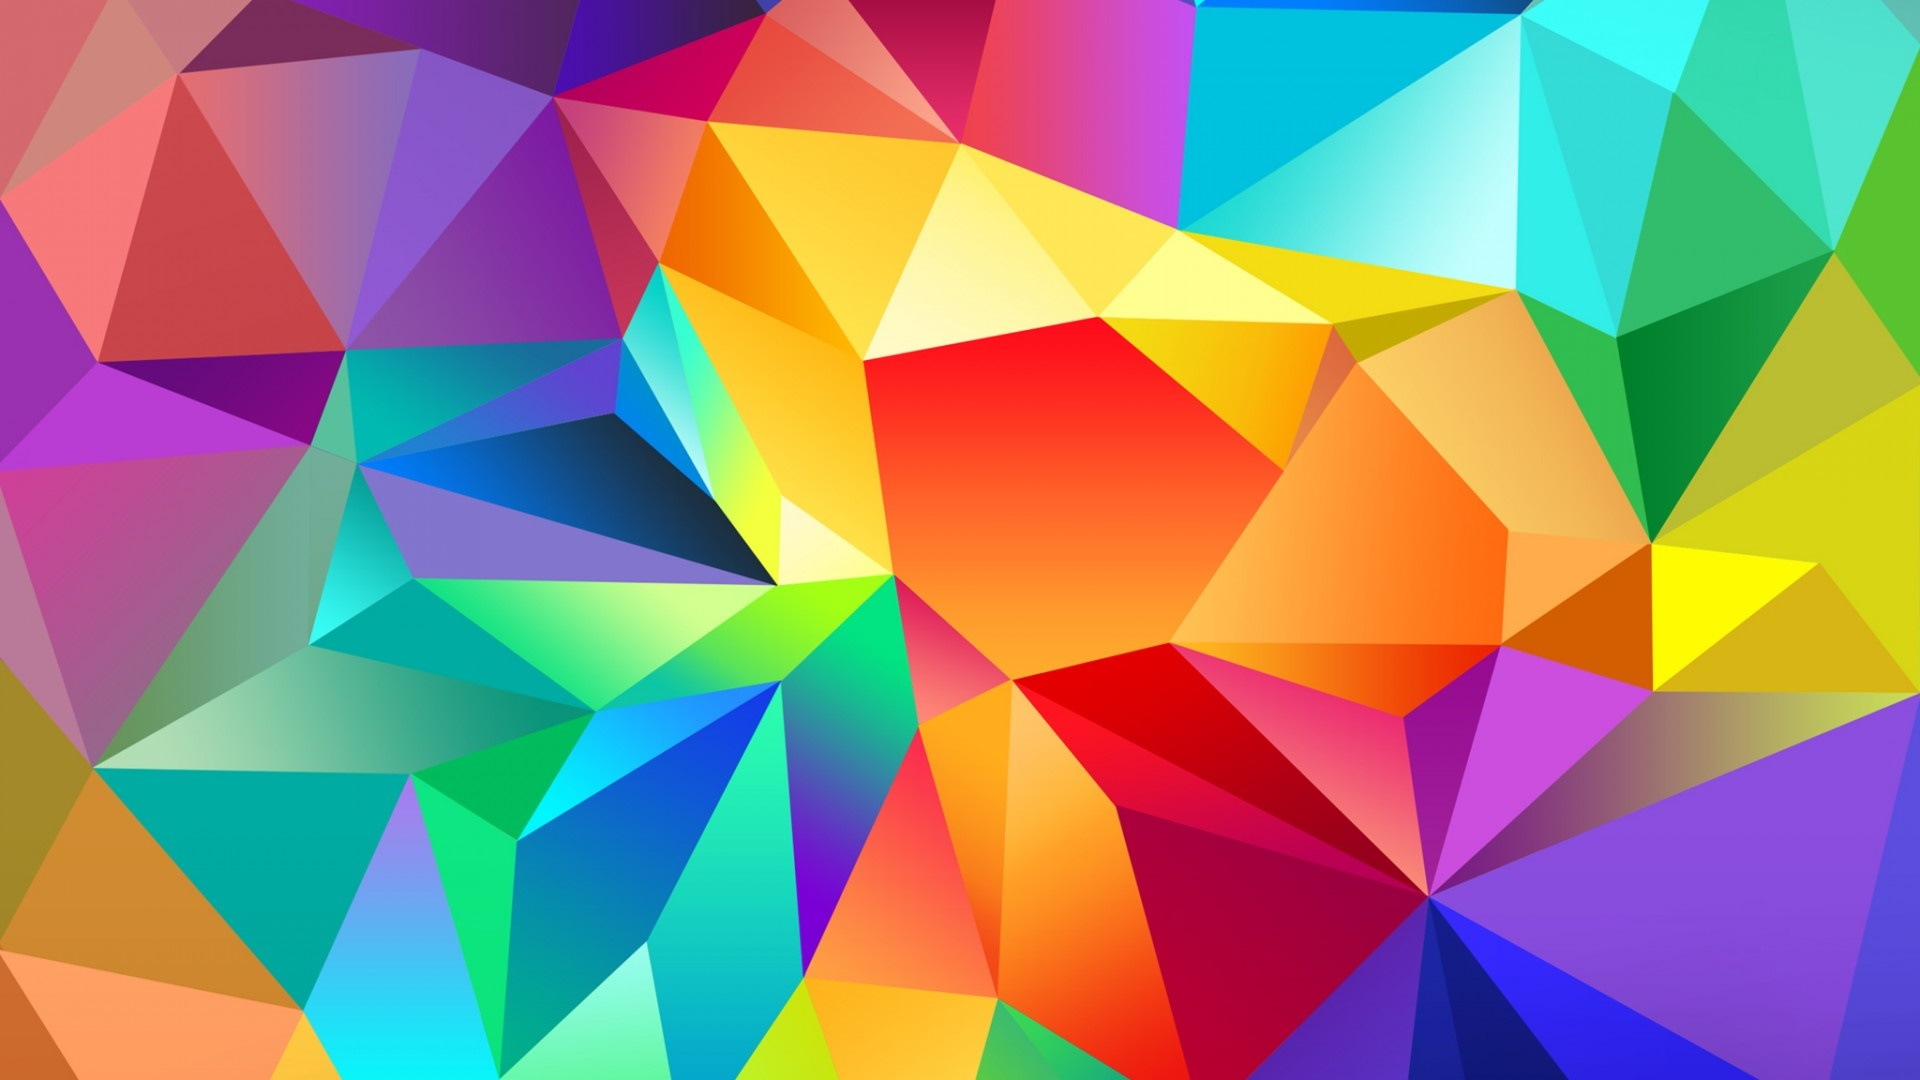 Colorful low-poly triangles wallpaper